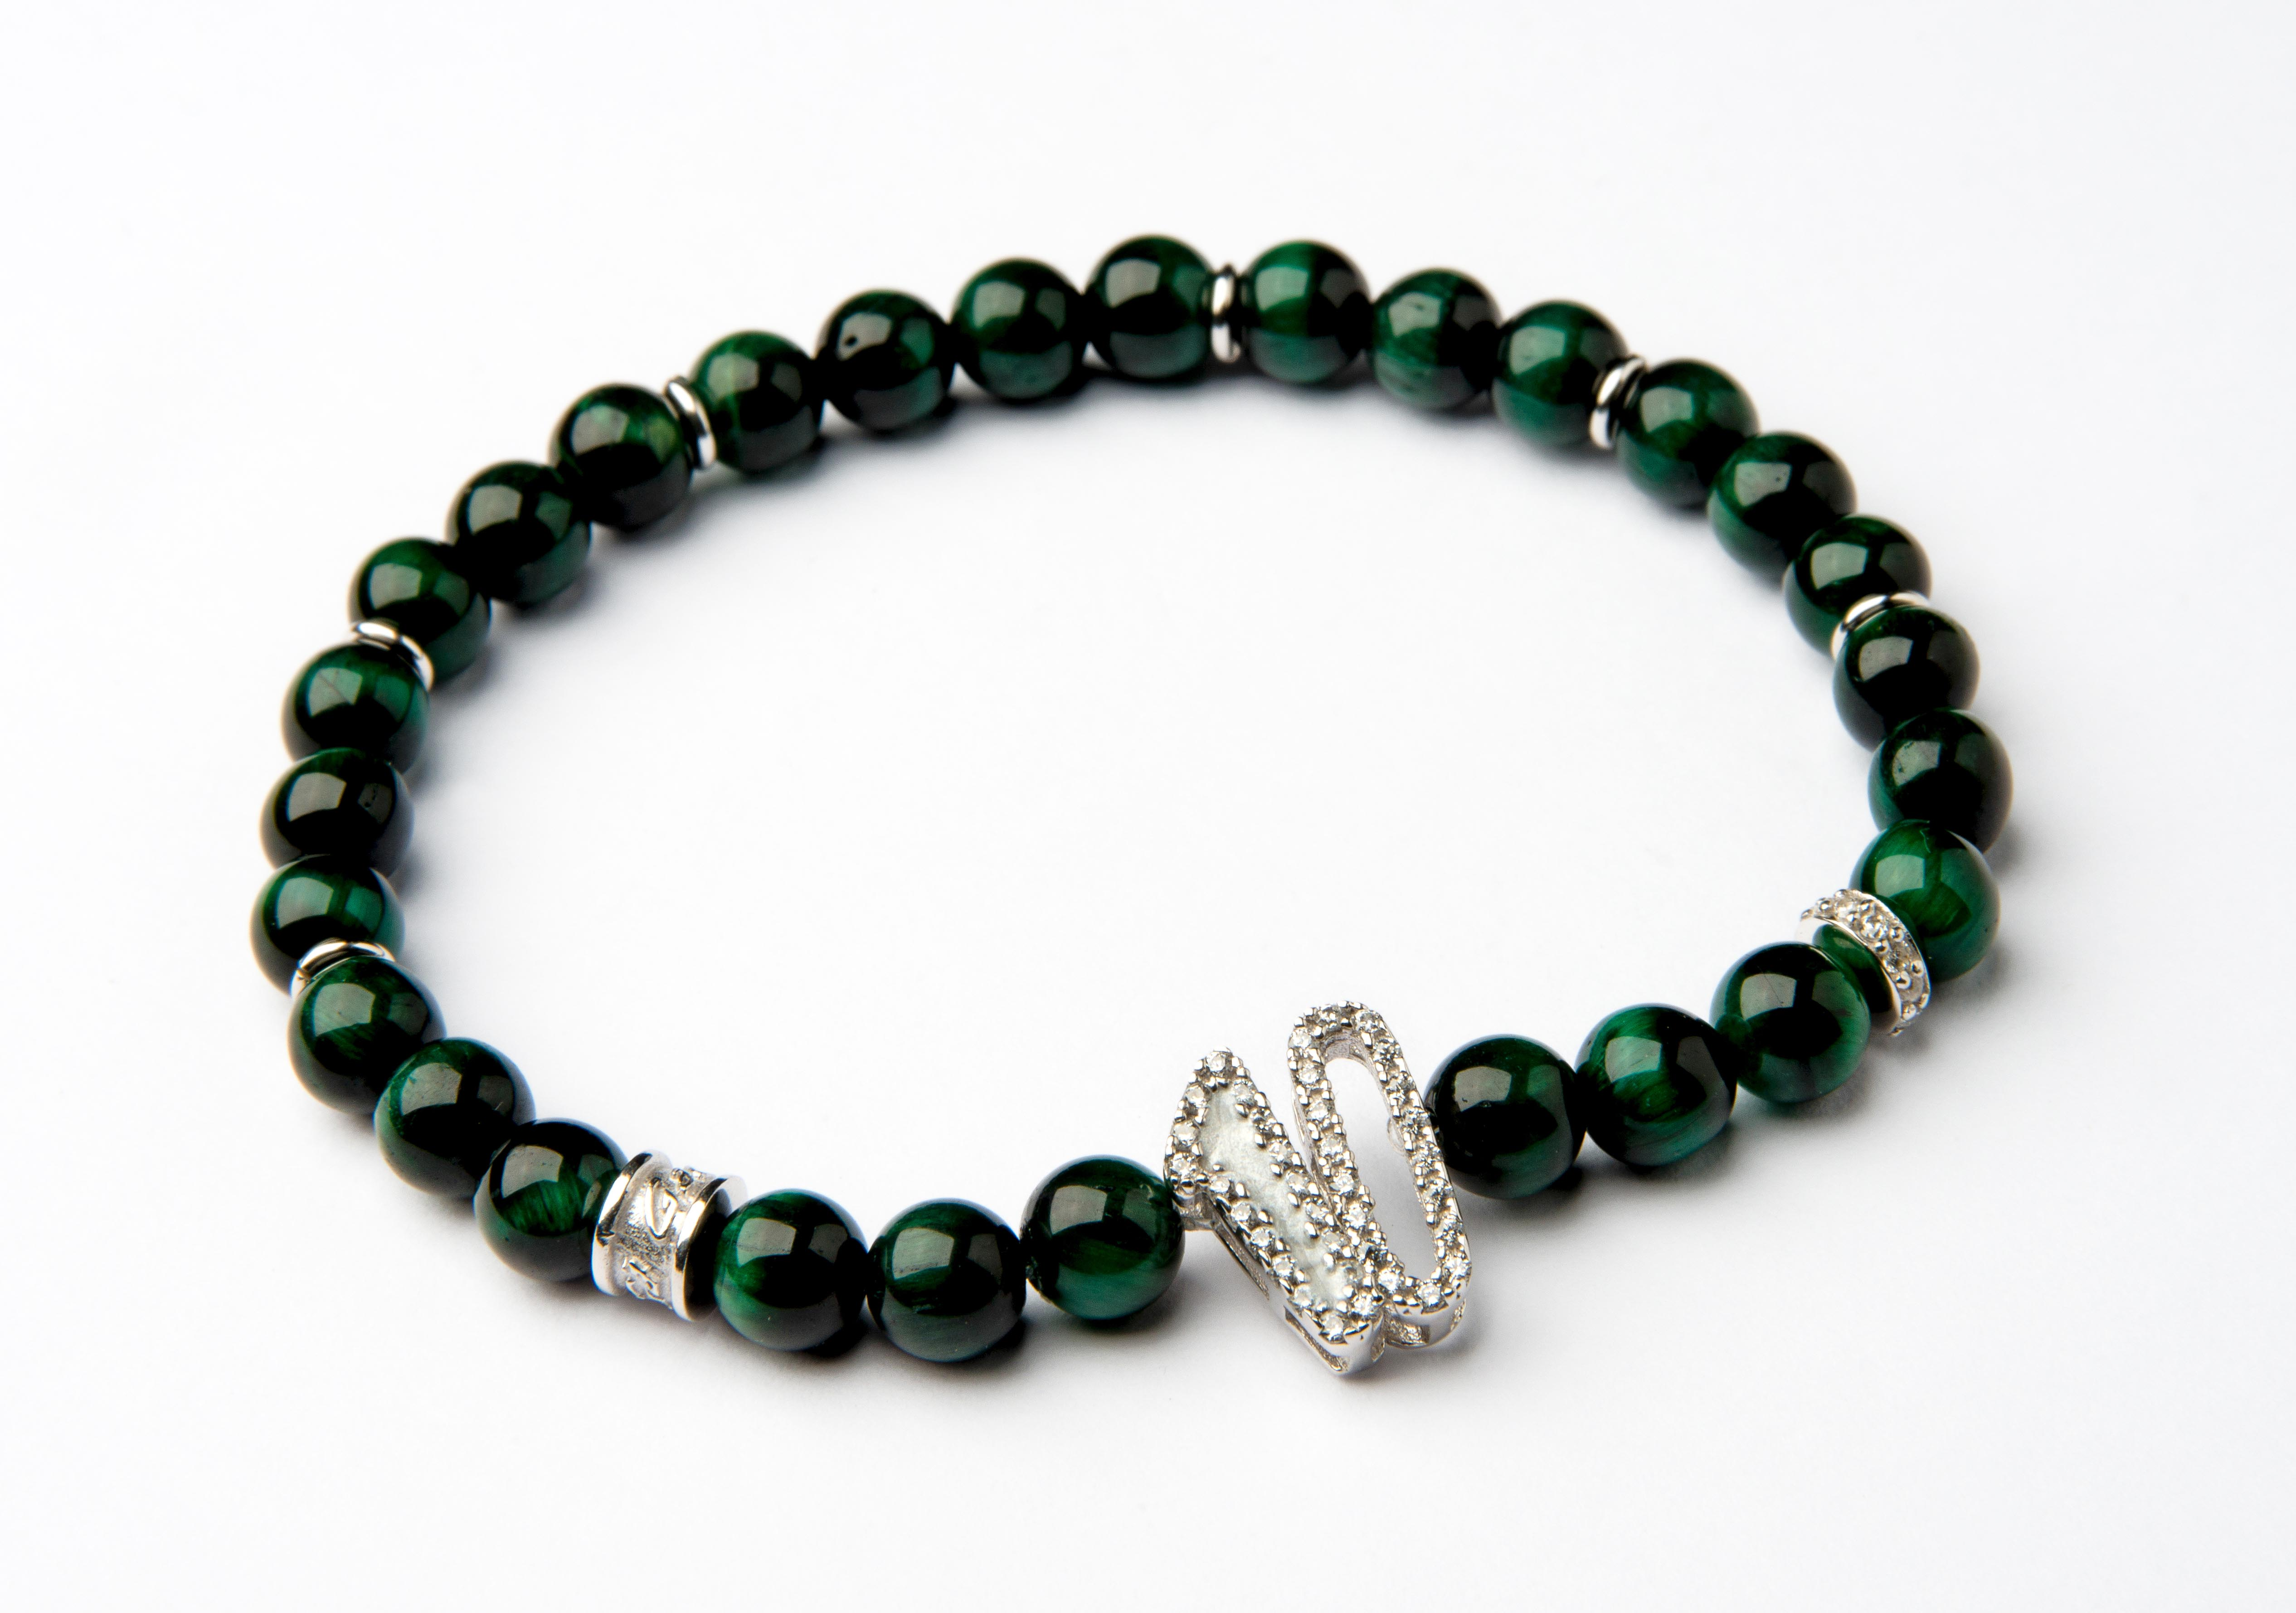 Number: 10 Silver, Mother Of Pearl, Ematite Green - 10WHGR